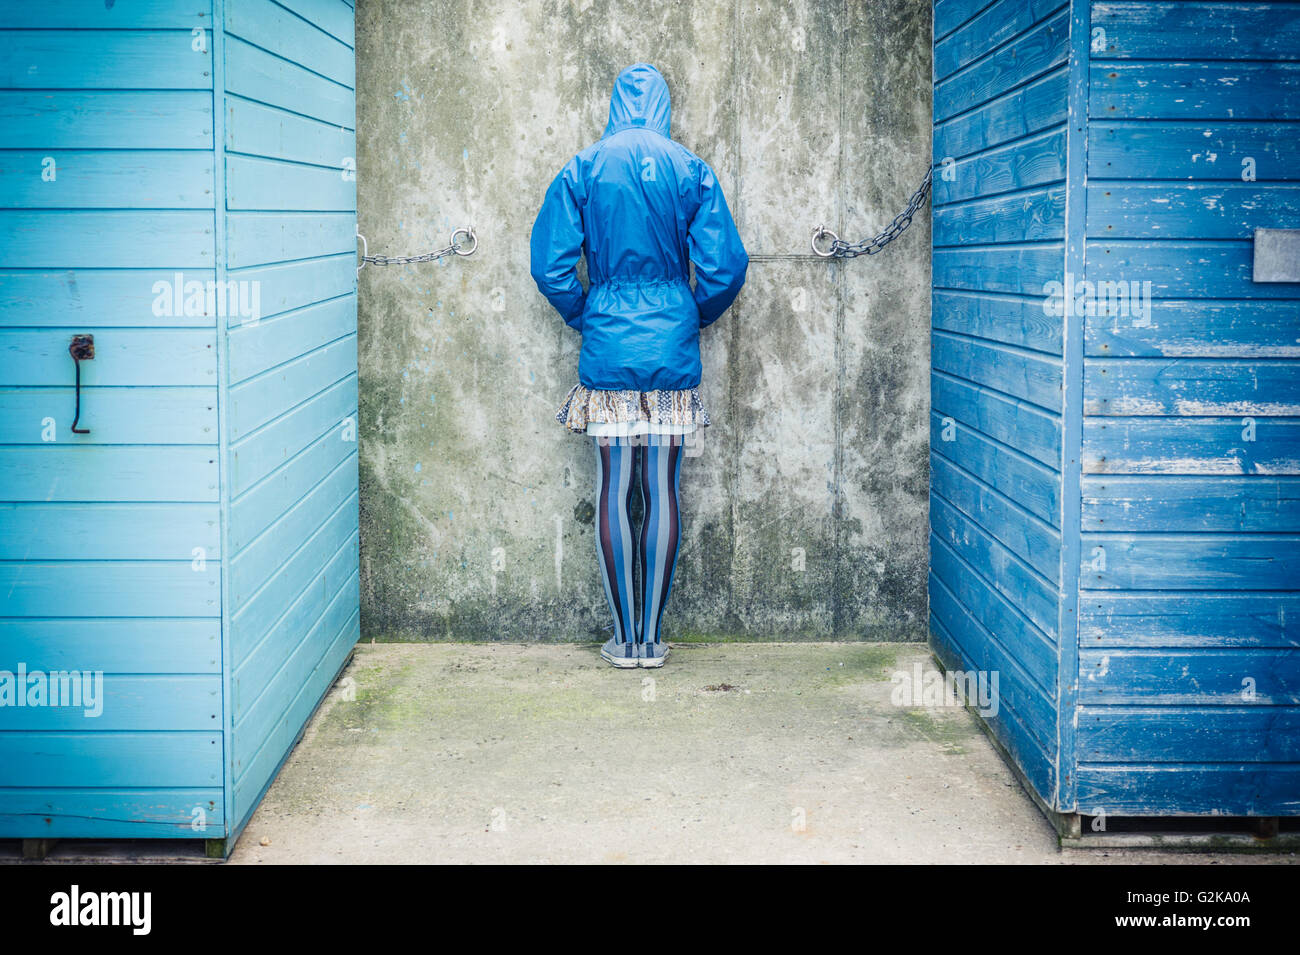 A person is standing with their head against the wall in between two beach huts - Stock Image